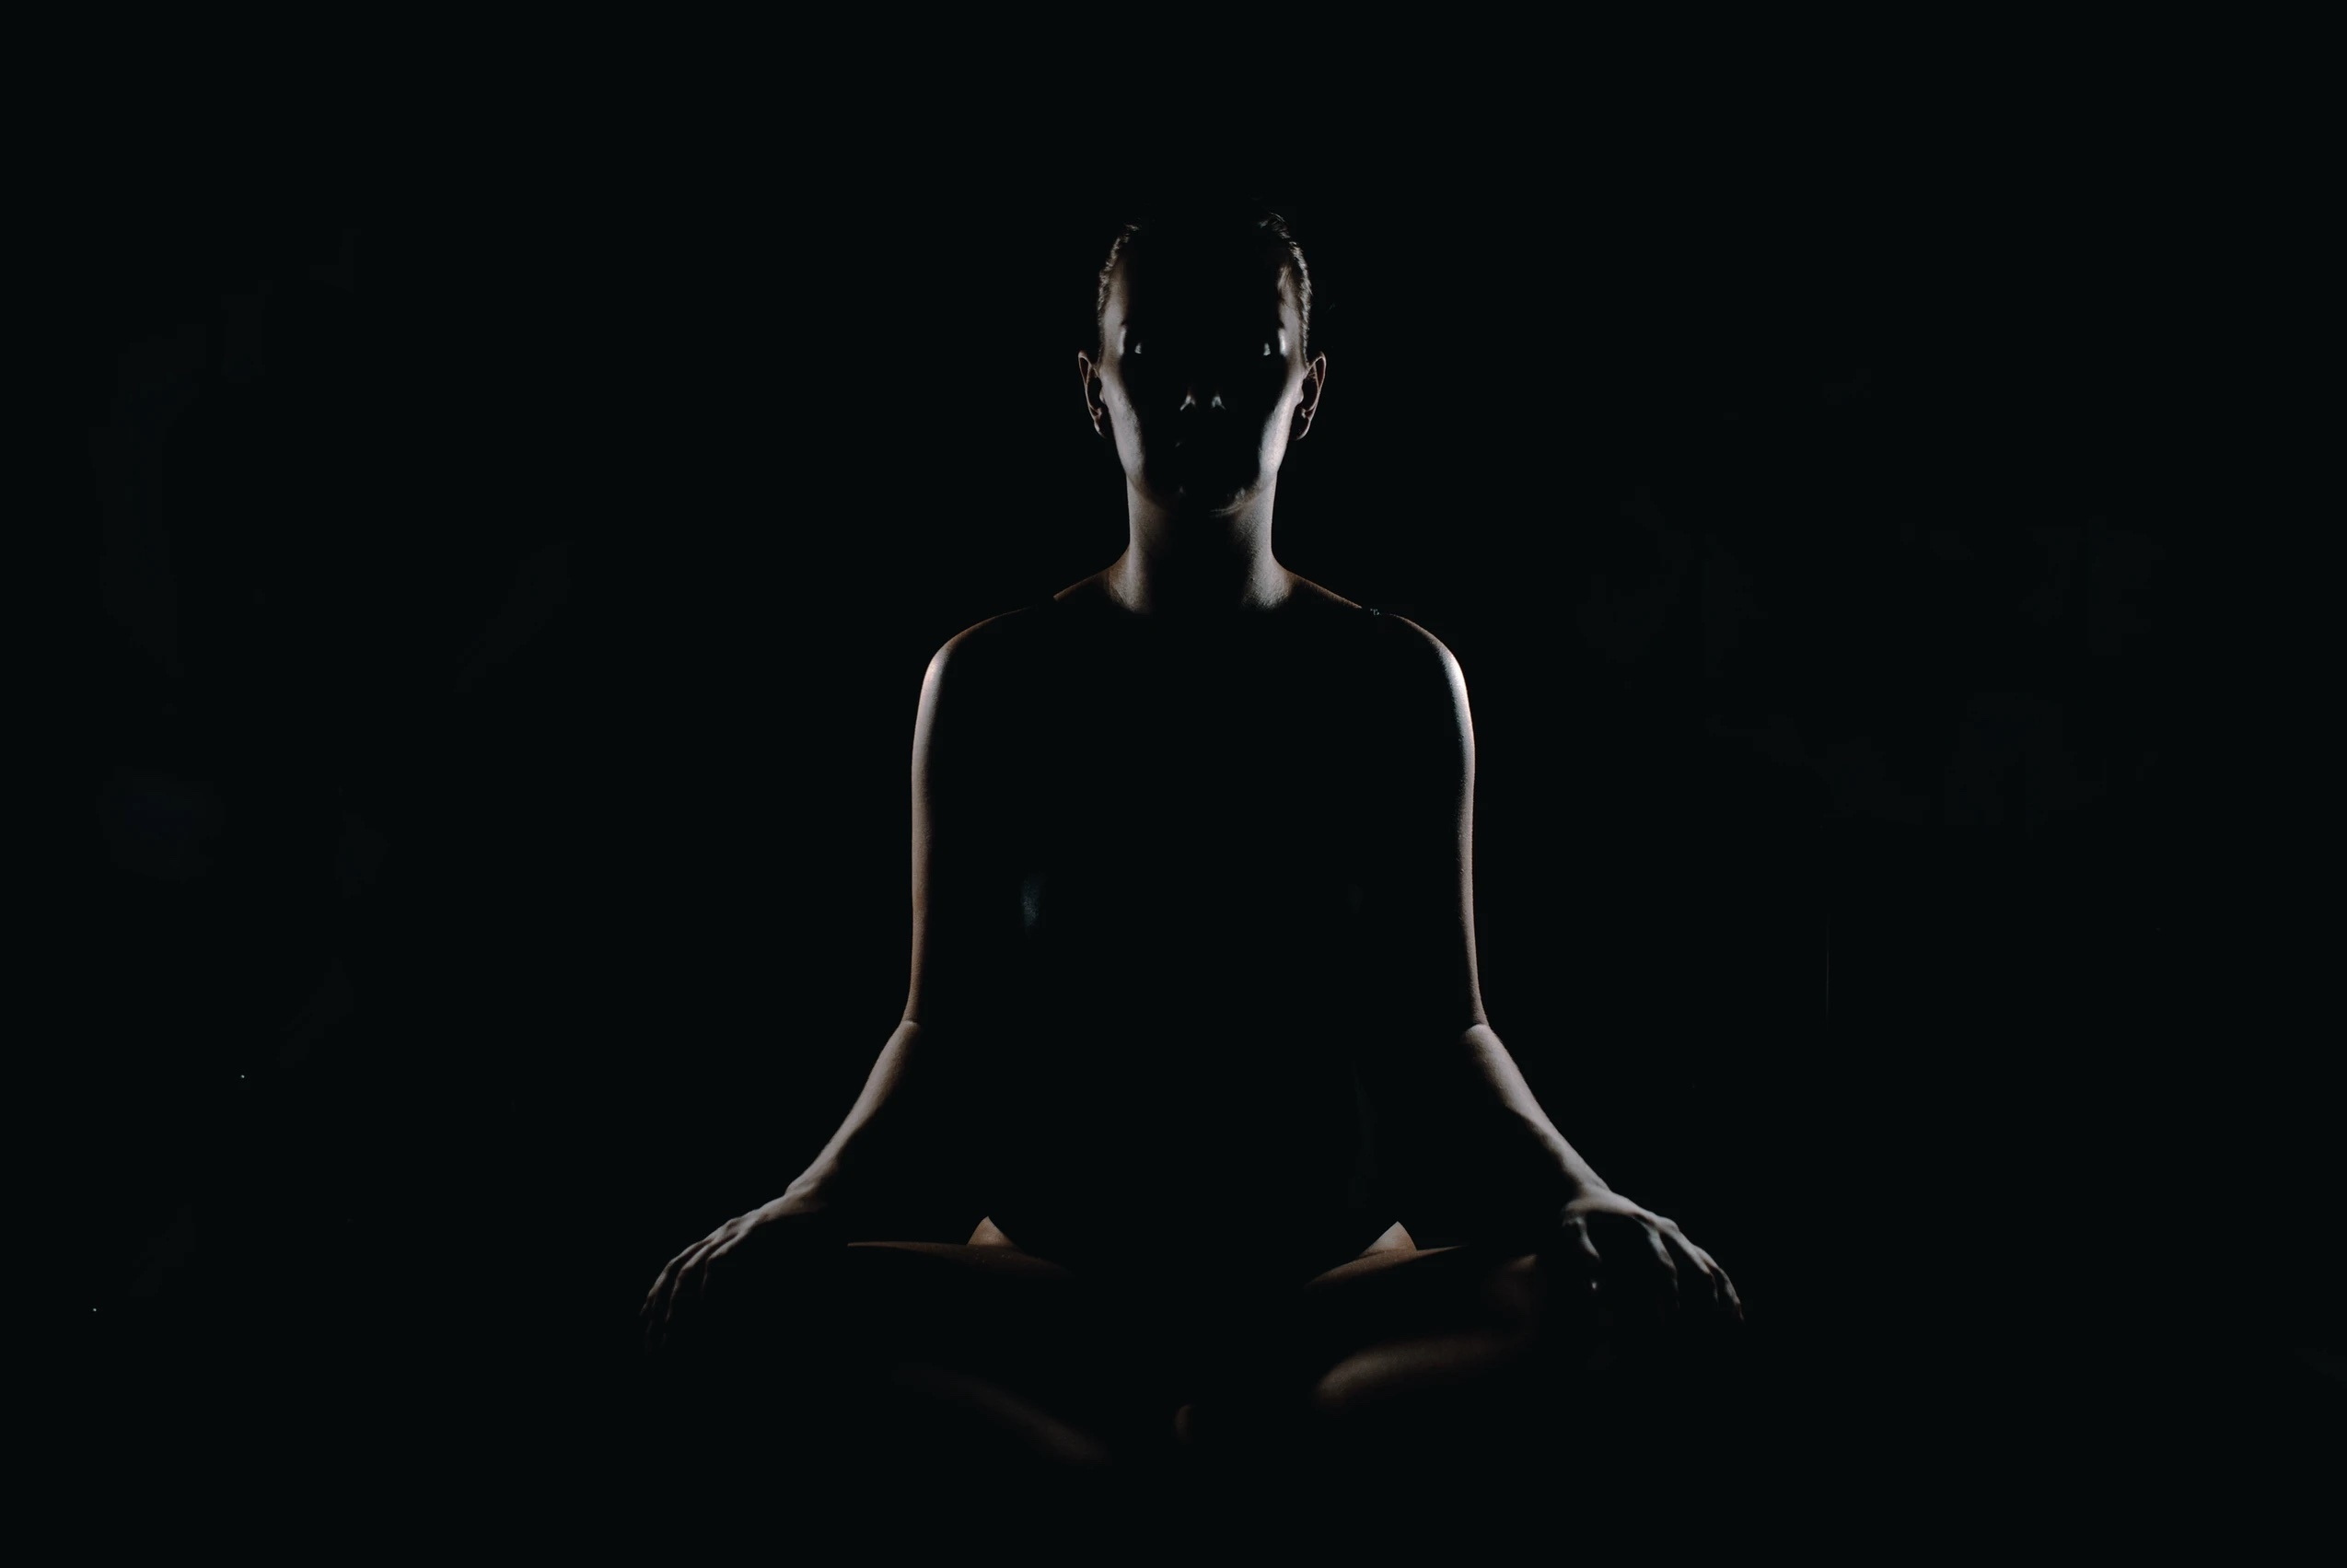 How to practice meditation?